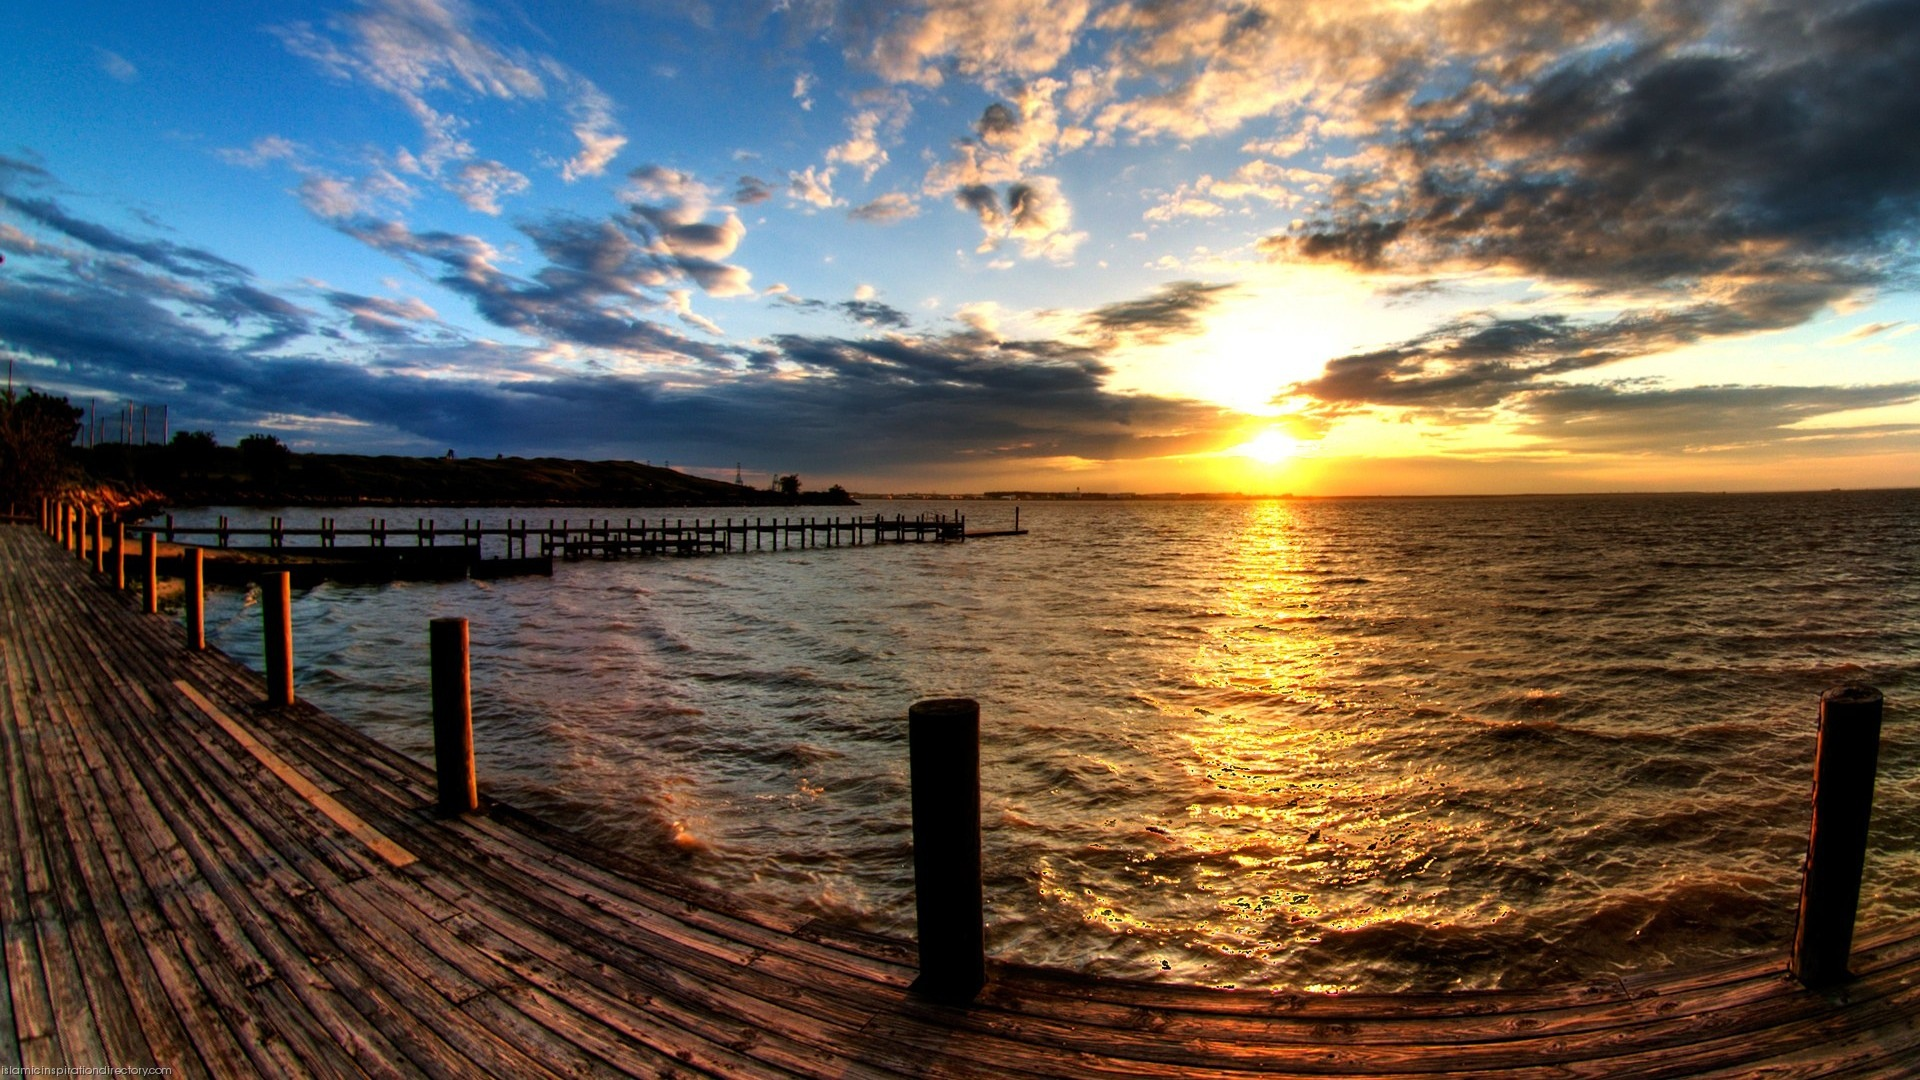 Hdr Cloudy Sunset Beach Wallpapercapitalcom